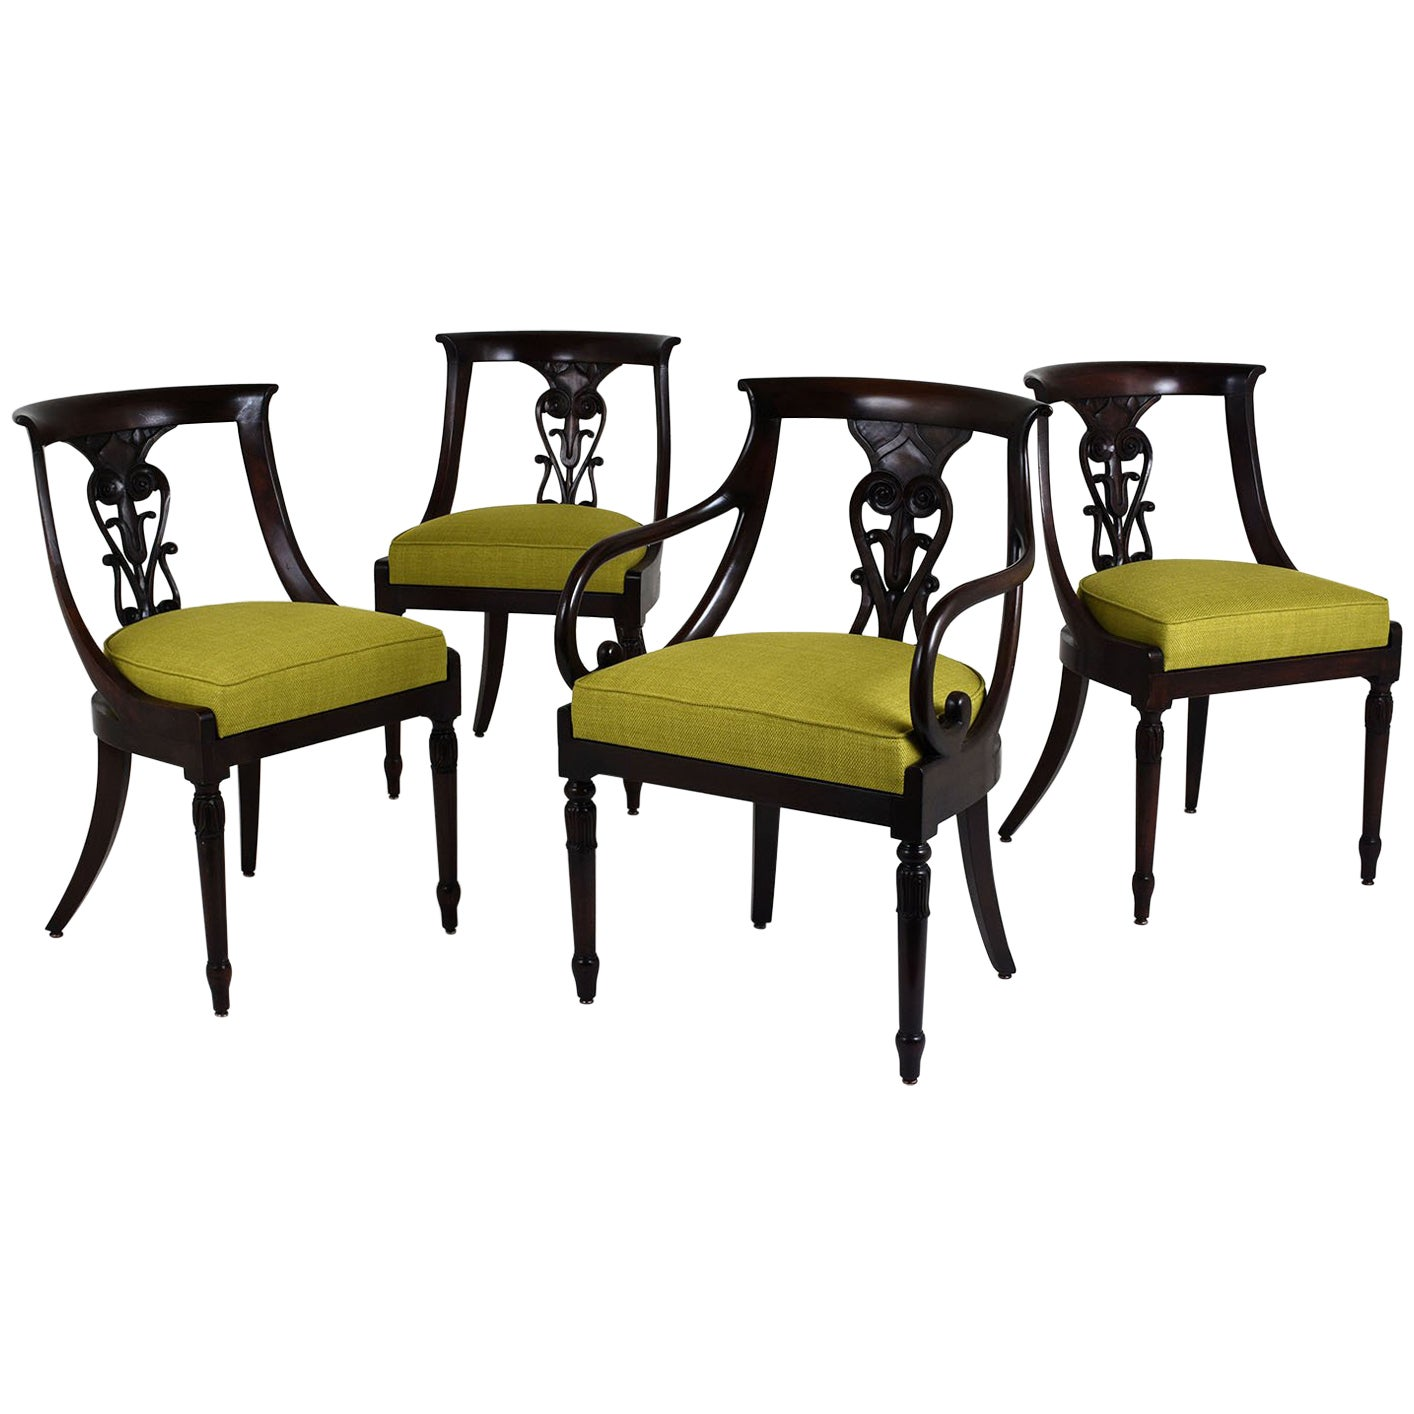 Set of Four Hollywood Regency Chairs